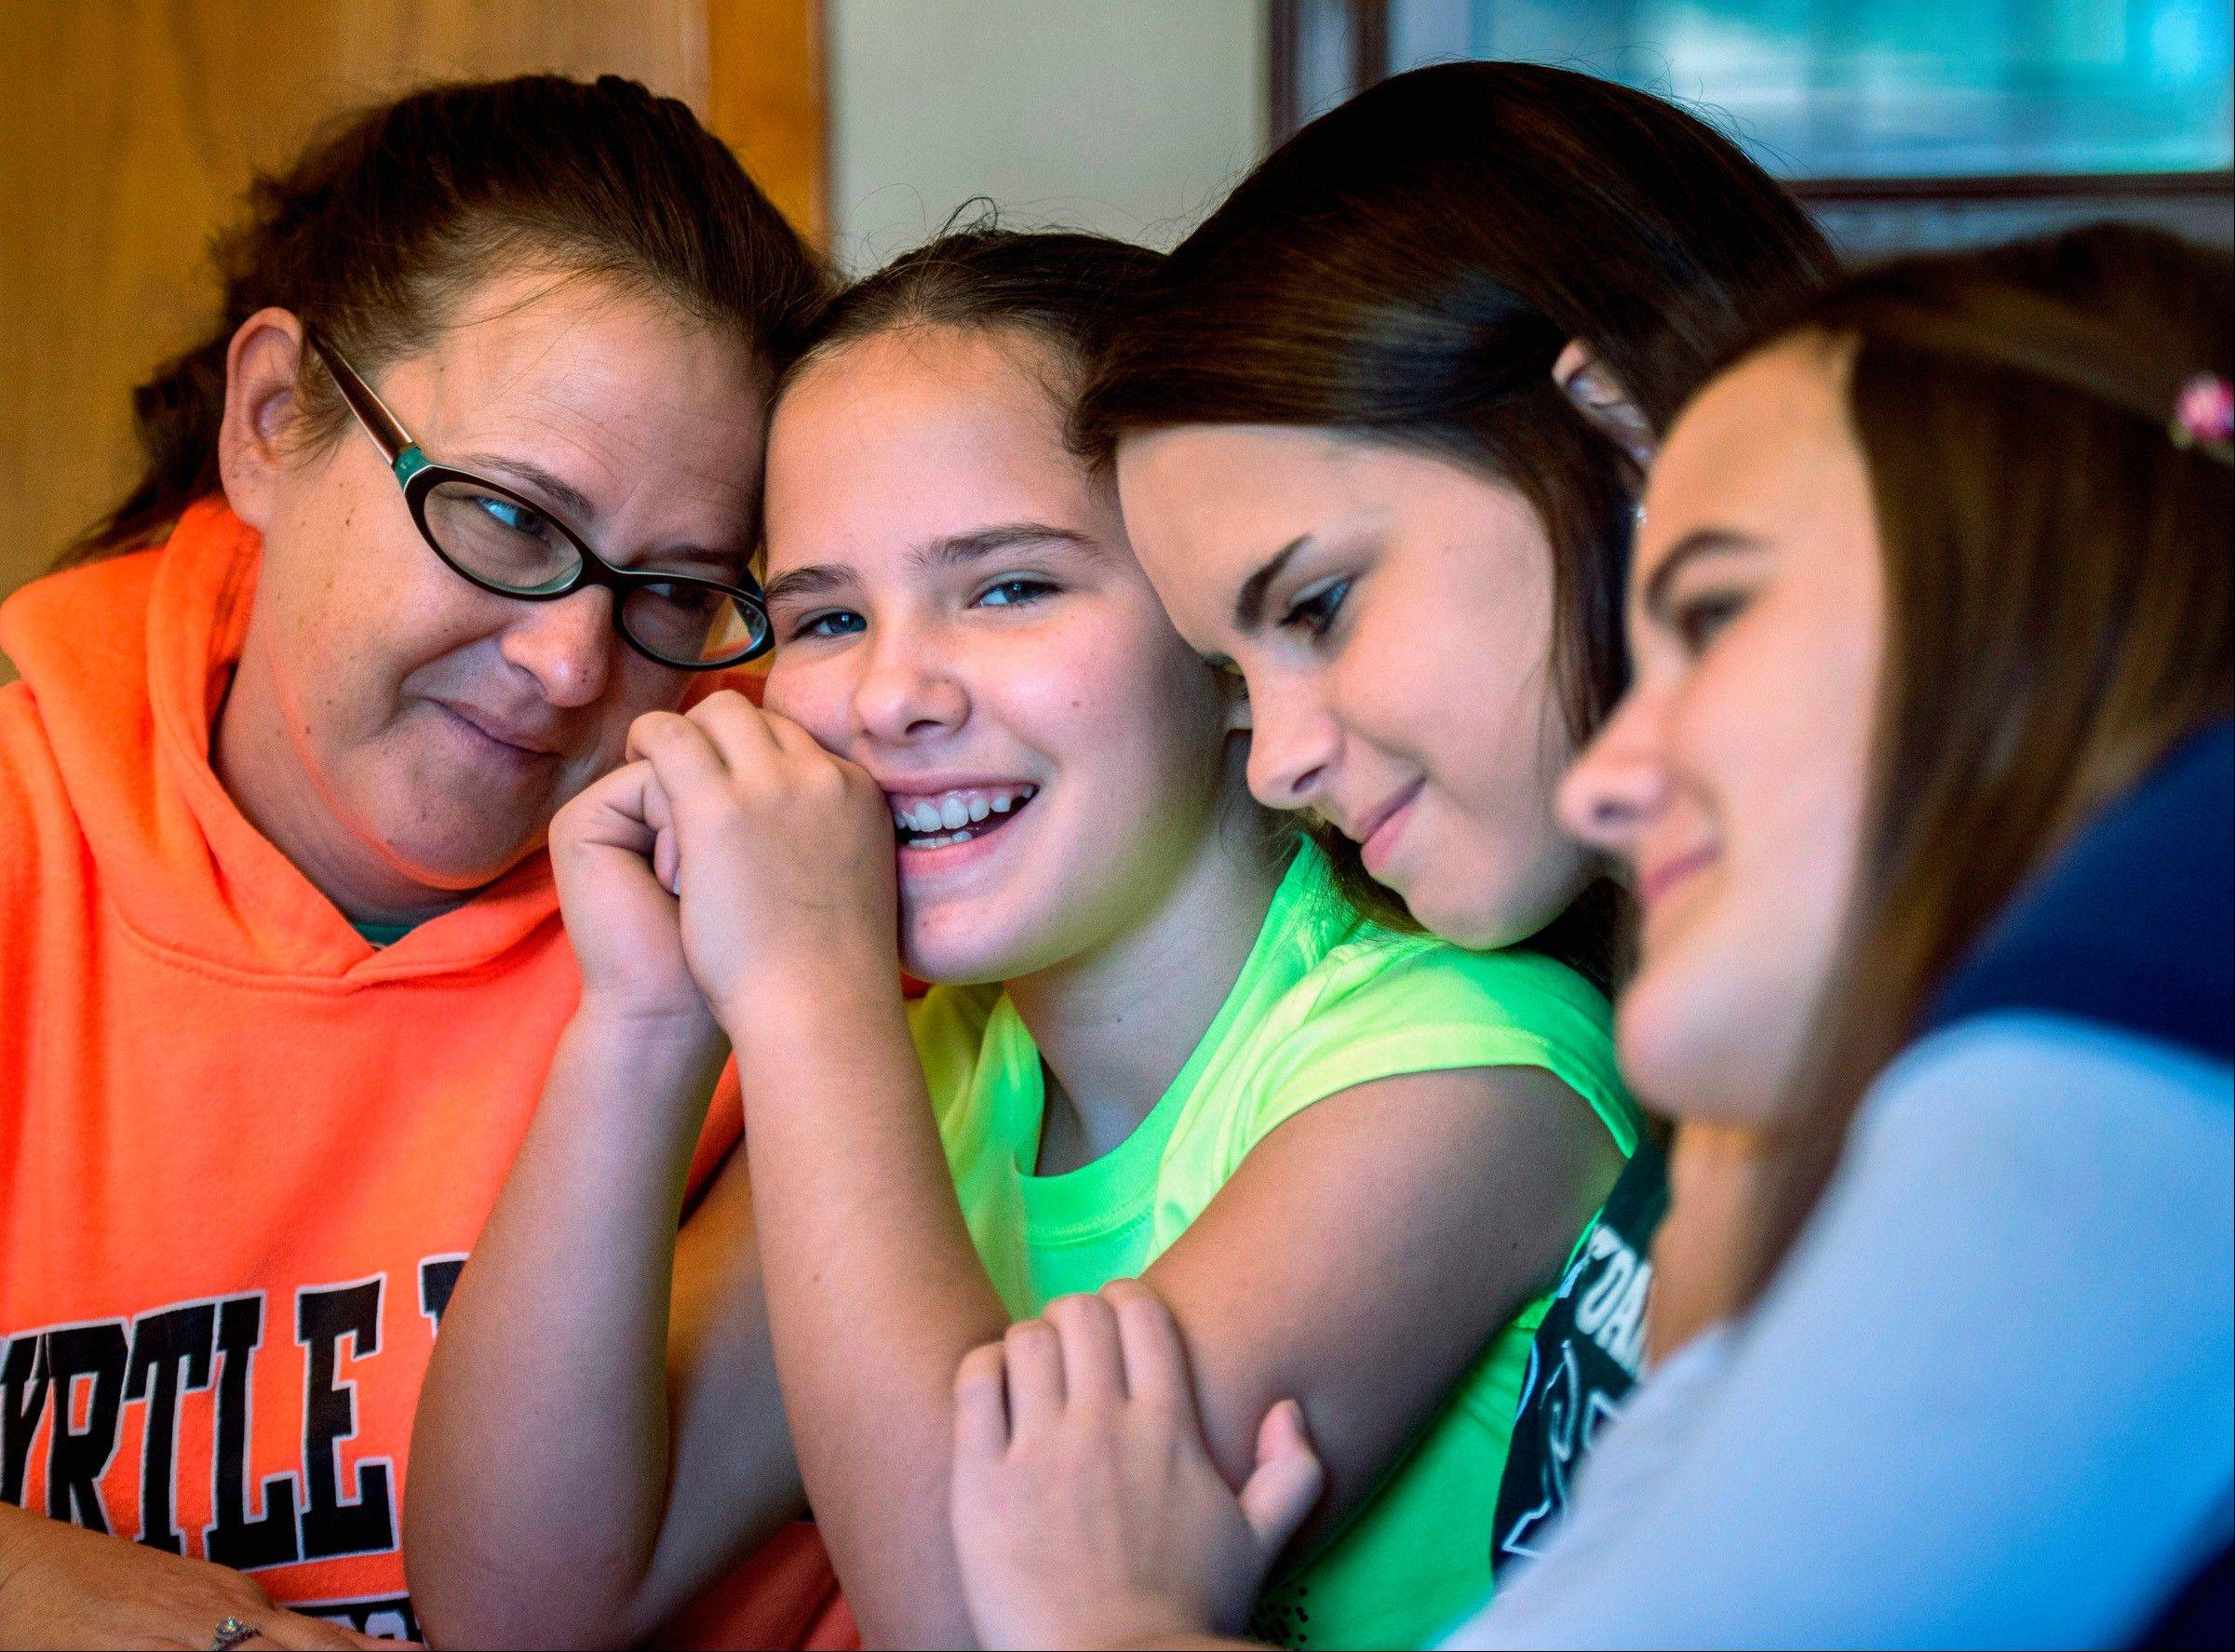 Molly Jackson, left, of Peoria, and three of her four daughters Priscilla, 11, center left, and Victoria, not pictured, suffer from what can only be described as a hyper-fever. The technical term for the disease is hyperimmunoglobulinemia D and periodic fever syndrome or HIDS. The two girls, along with sister, Brittaney, 14, far right, suffer juvenile idiopathic arthritis. Stephanie, 15, center right, has been untouched but is supportive of her sisters. The family is trying to raise funds for specialized treatment at John Hopkins.